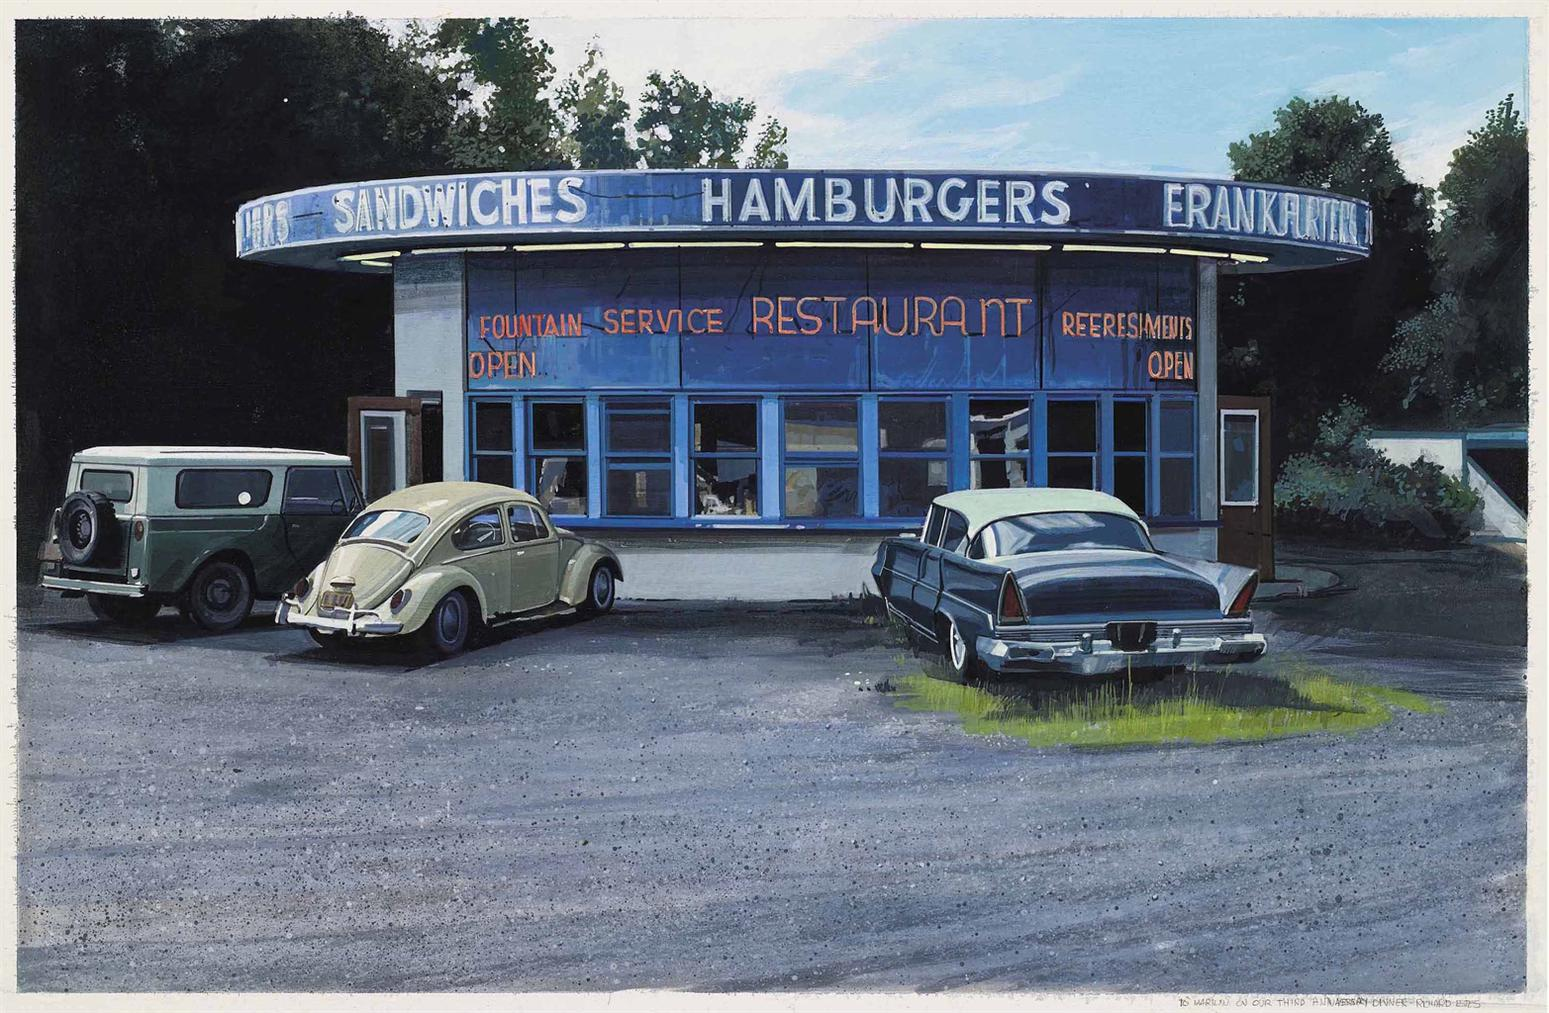 Richard Estes-Sandwiches, Hamburgers, Frankfurters-1970